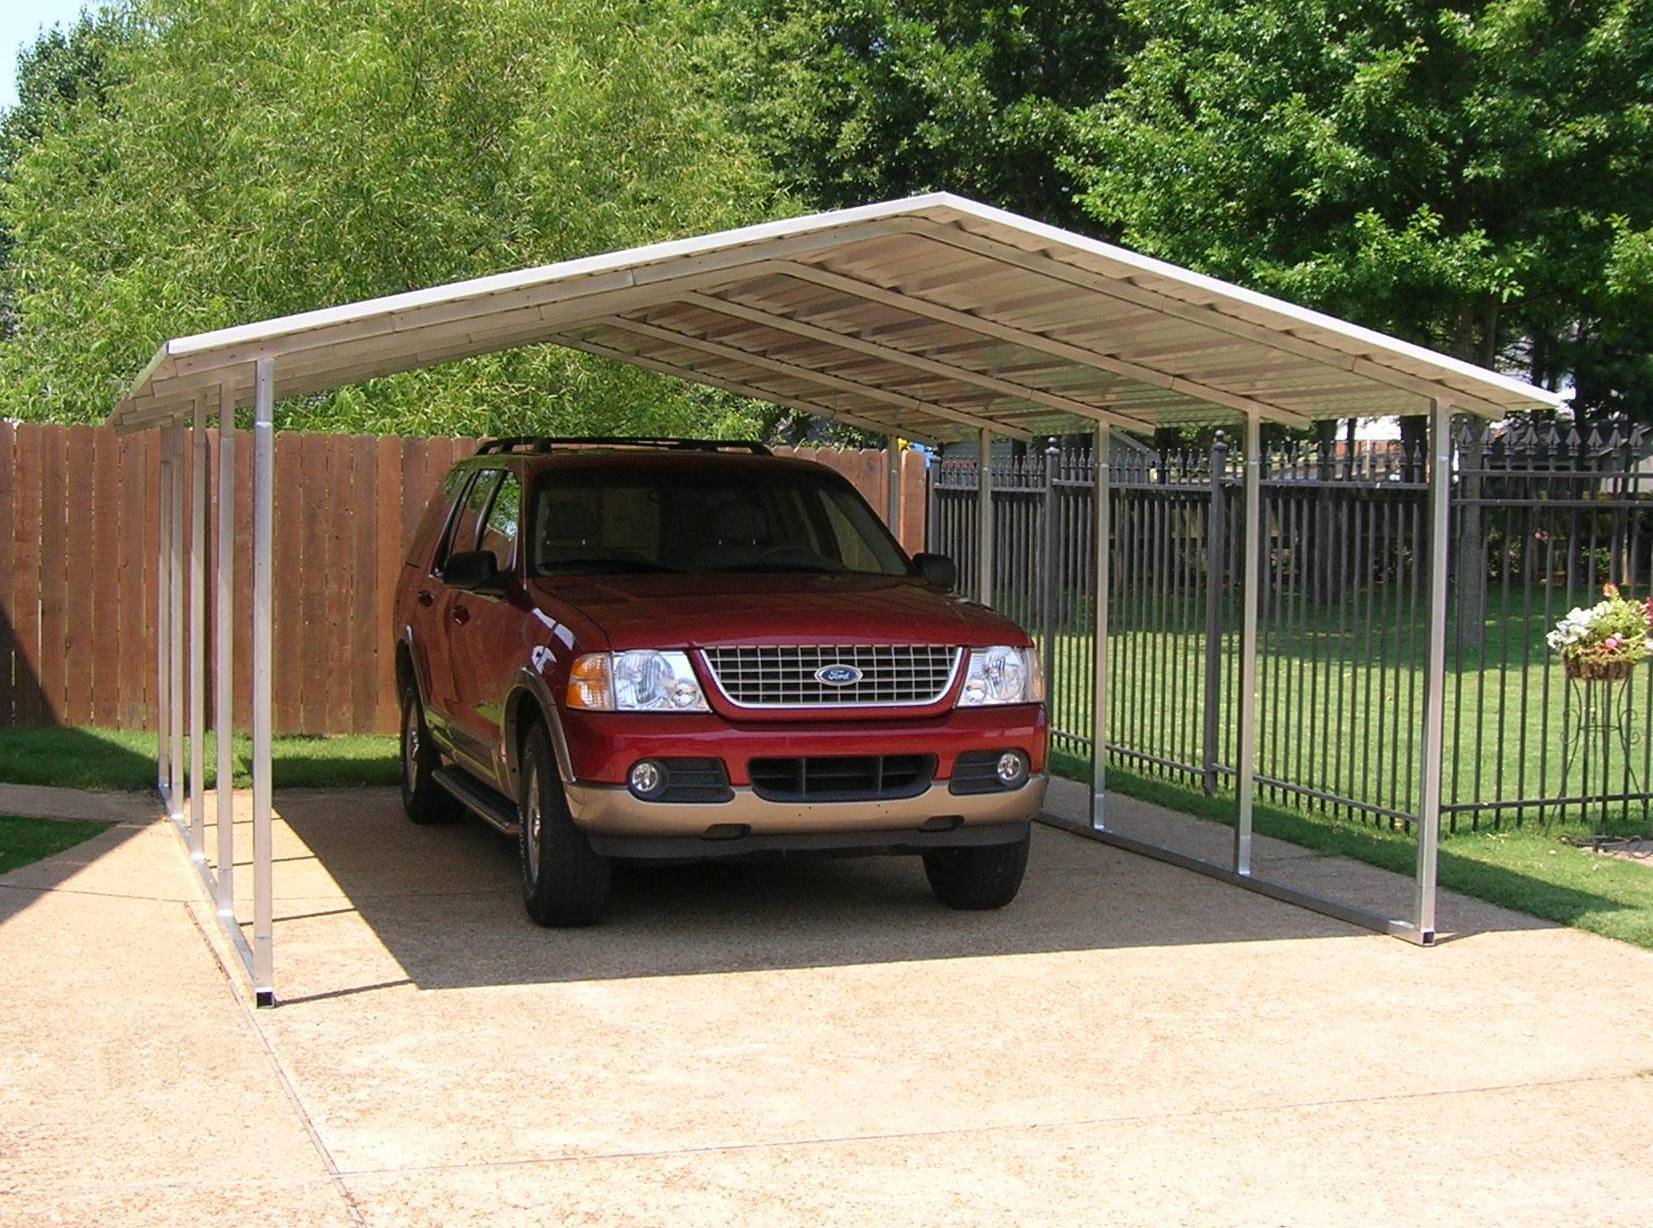 steel carport kits metal carport kits 595. Black Bedroom Furniture Sets. Home Design Ideas